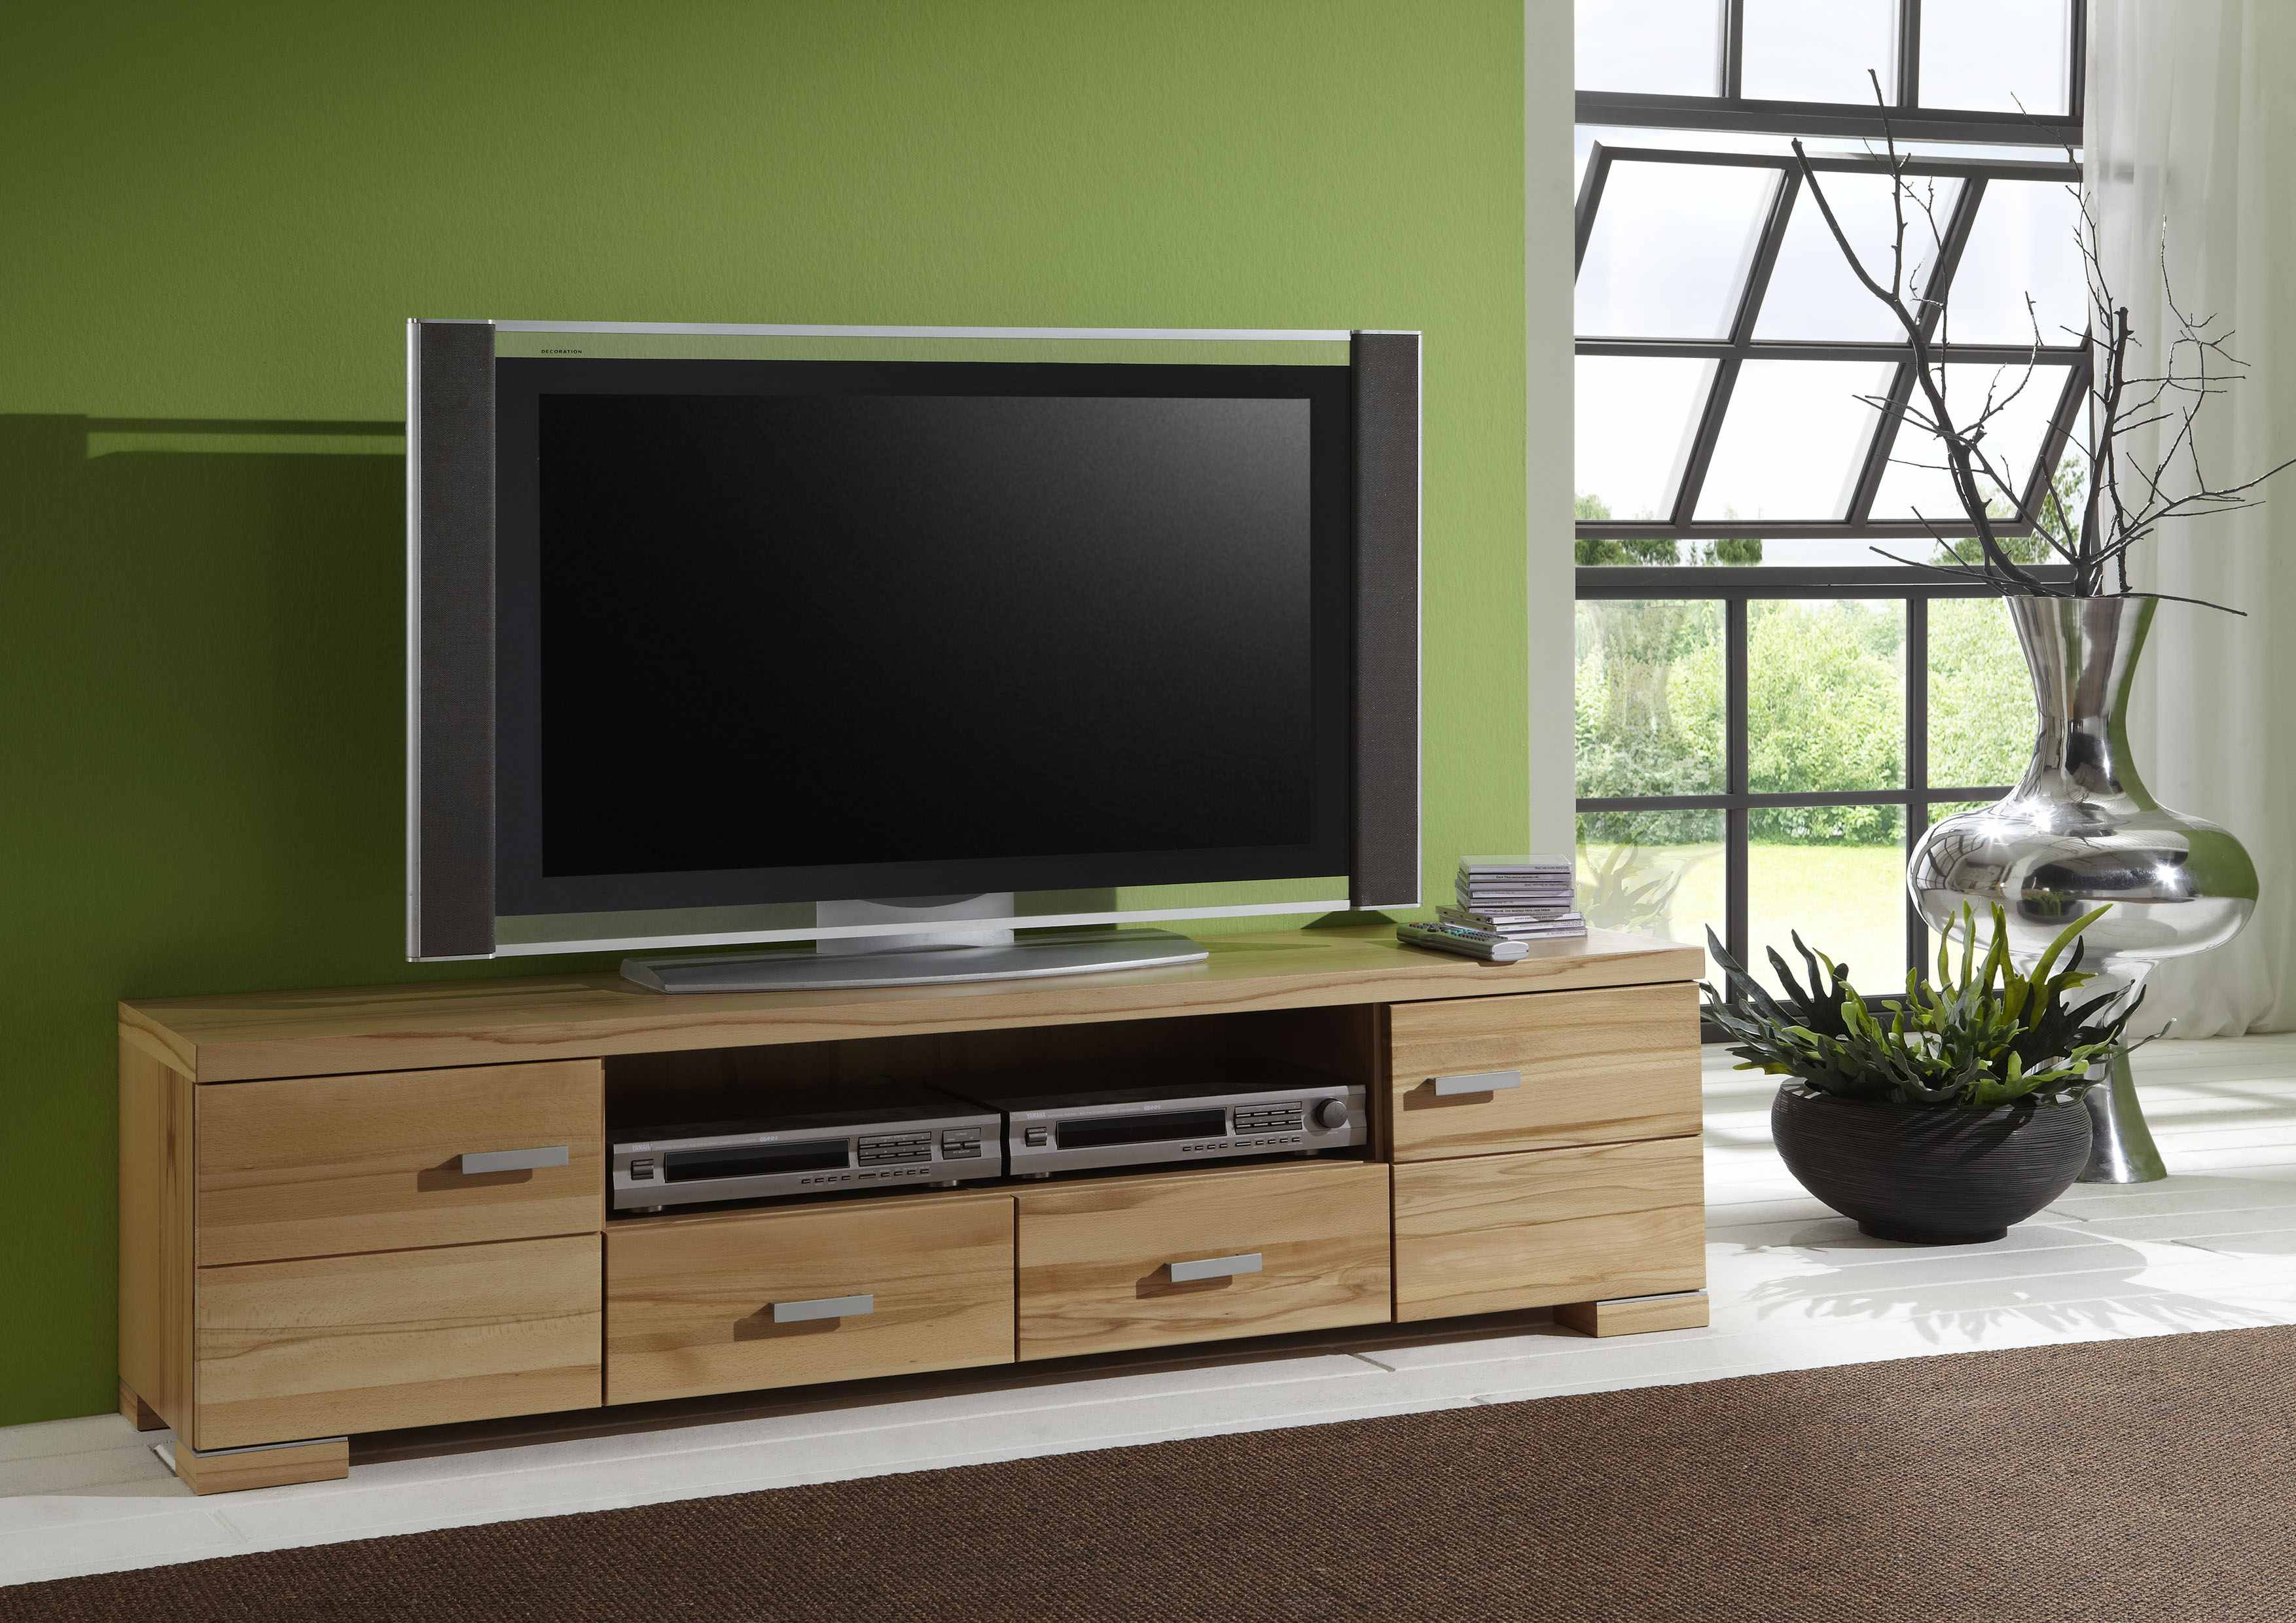 lowboard cambia tv lowboards tv hifi m bel wohnzimmer m. Black Bedroom Furniture Sets. Home Design Ideas